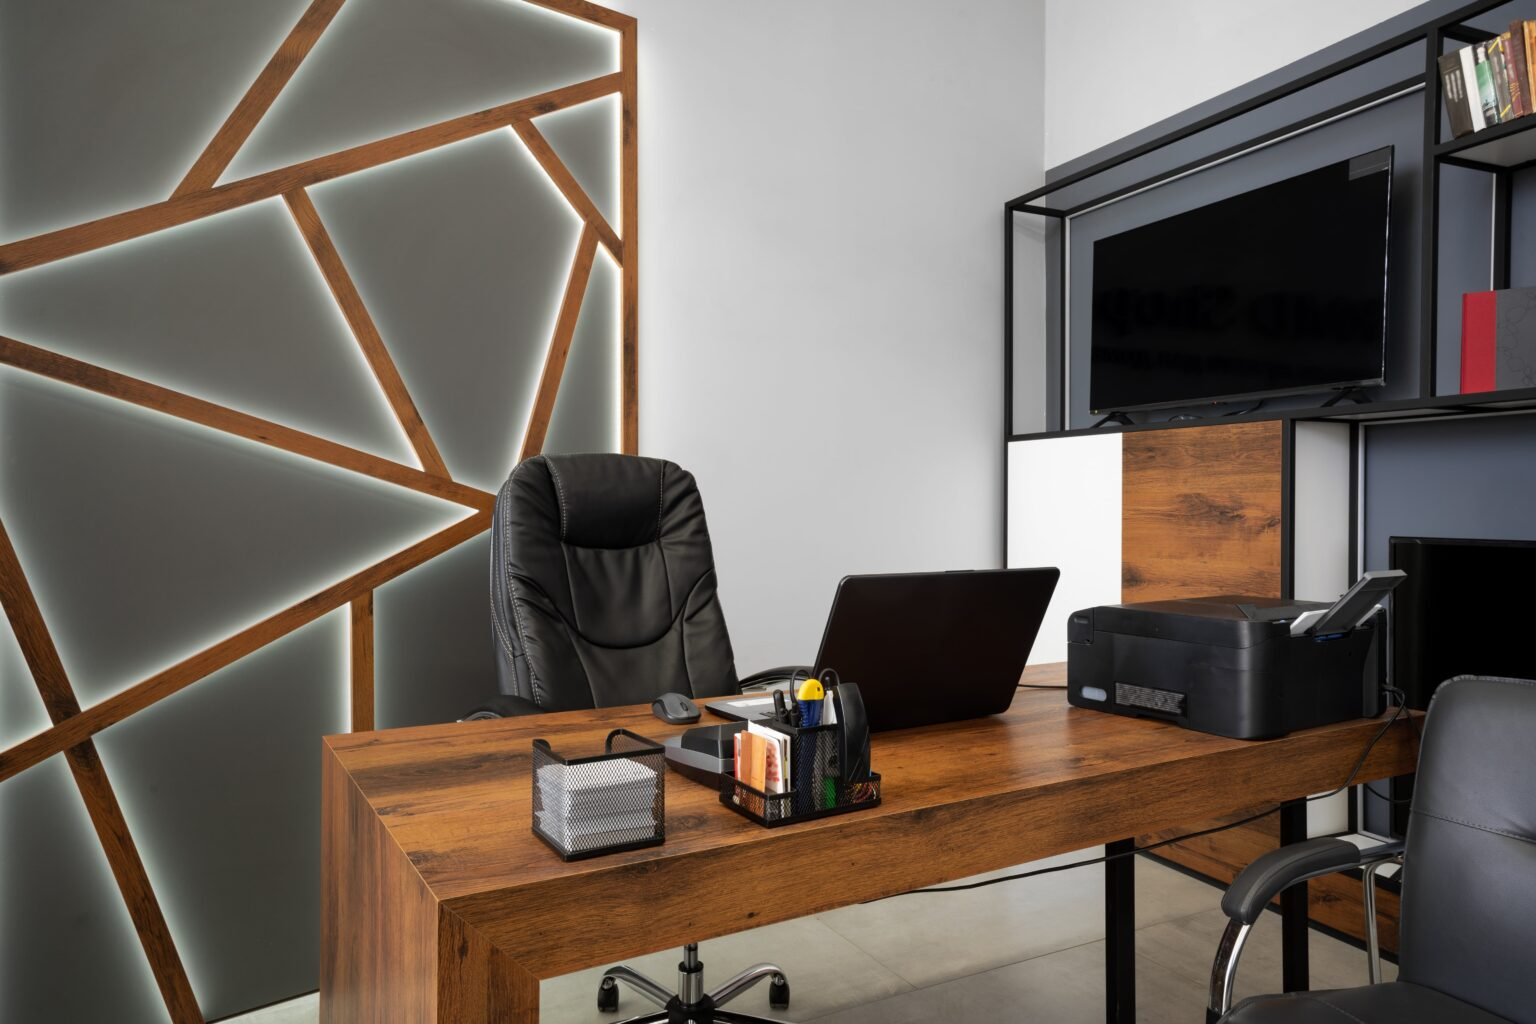 modern-office-interior-with-big-wooden-table-JV4SUM4-min